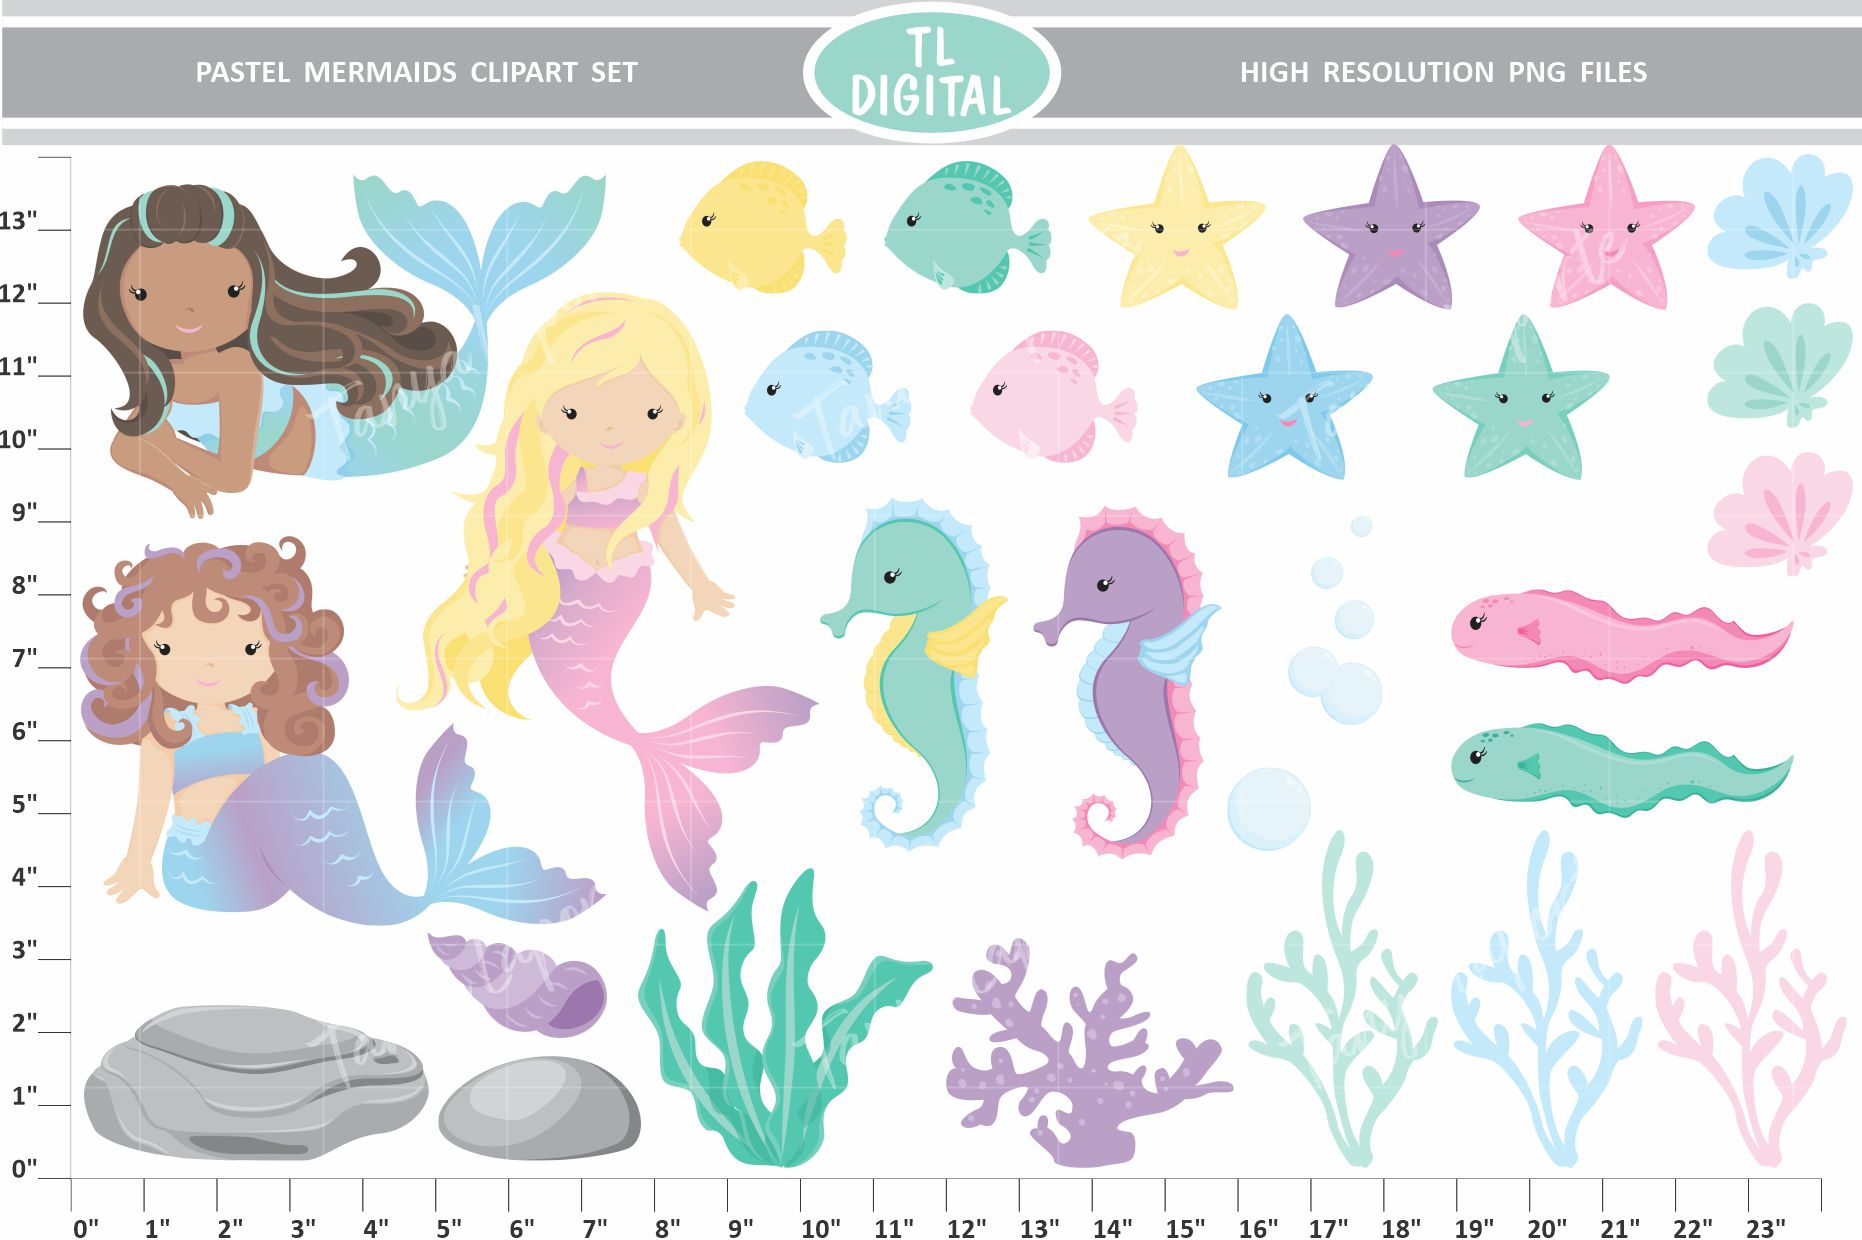 Pastel Mermaid Clipart Set 29 High Resolution PNG Graphics example image 2